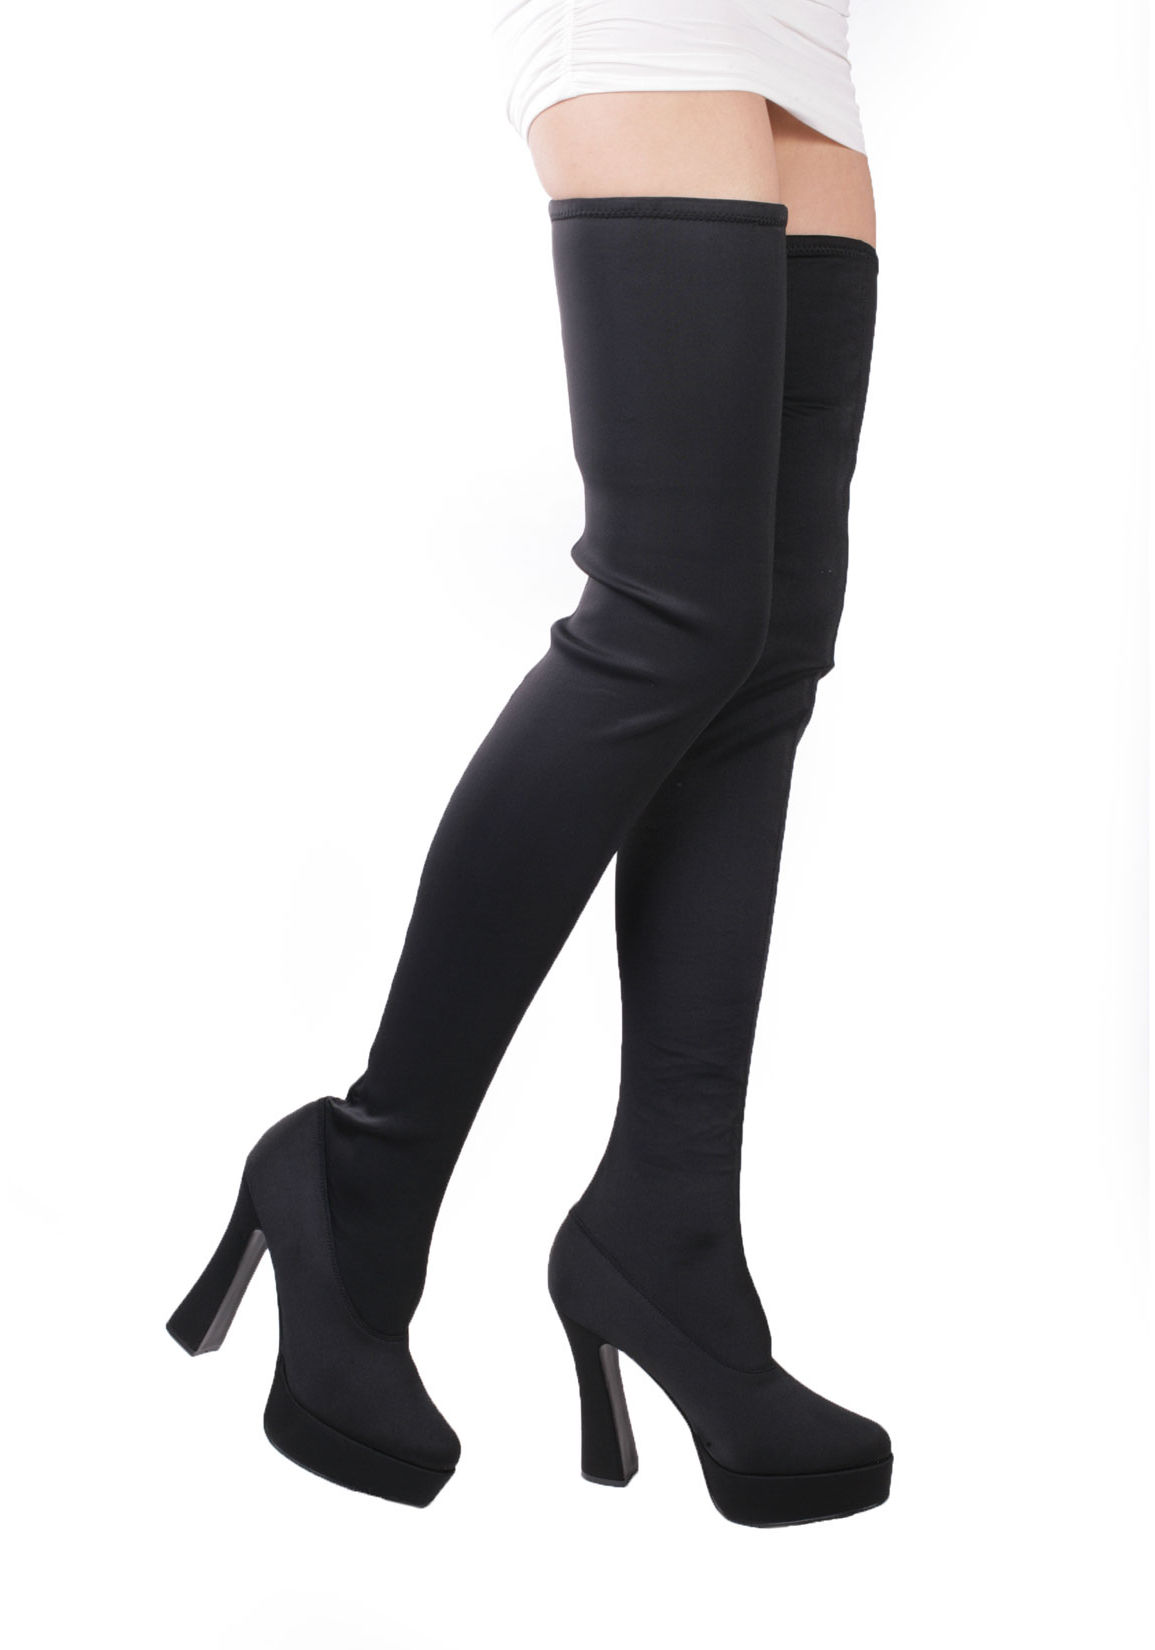 platform thigh high boots for sale classifieds